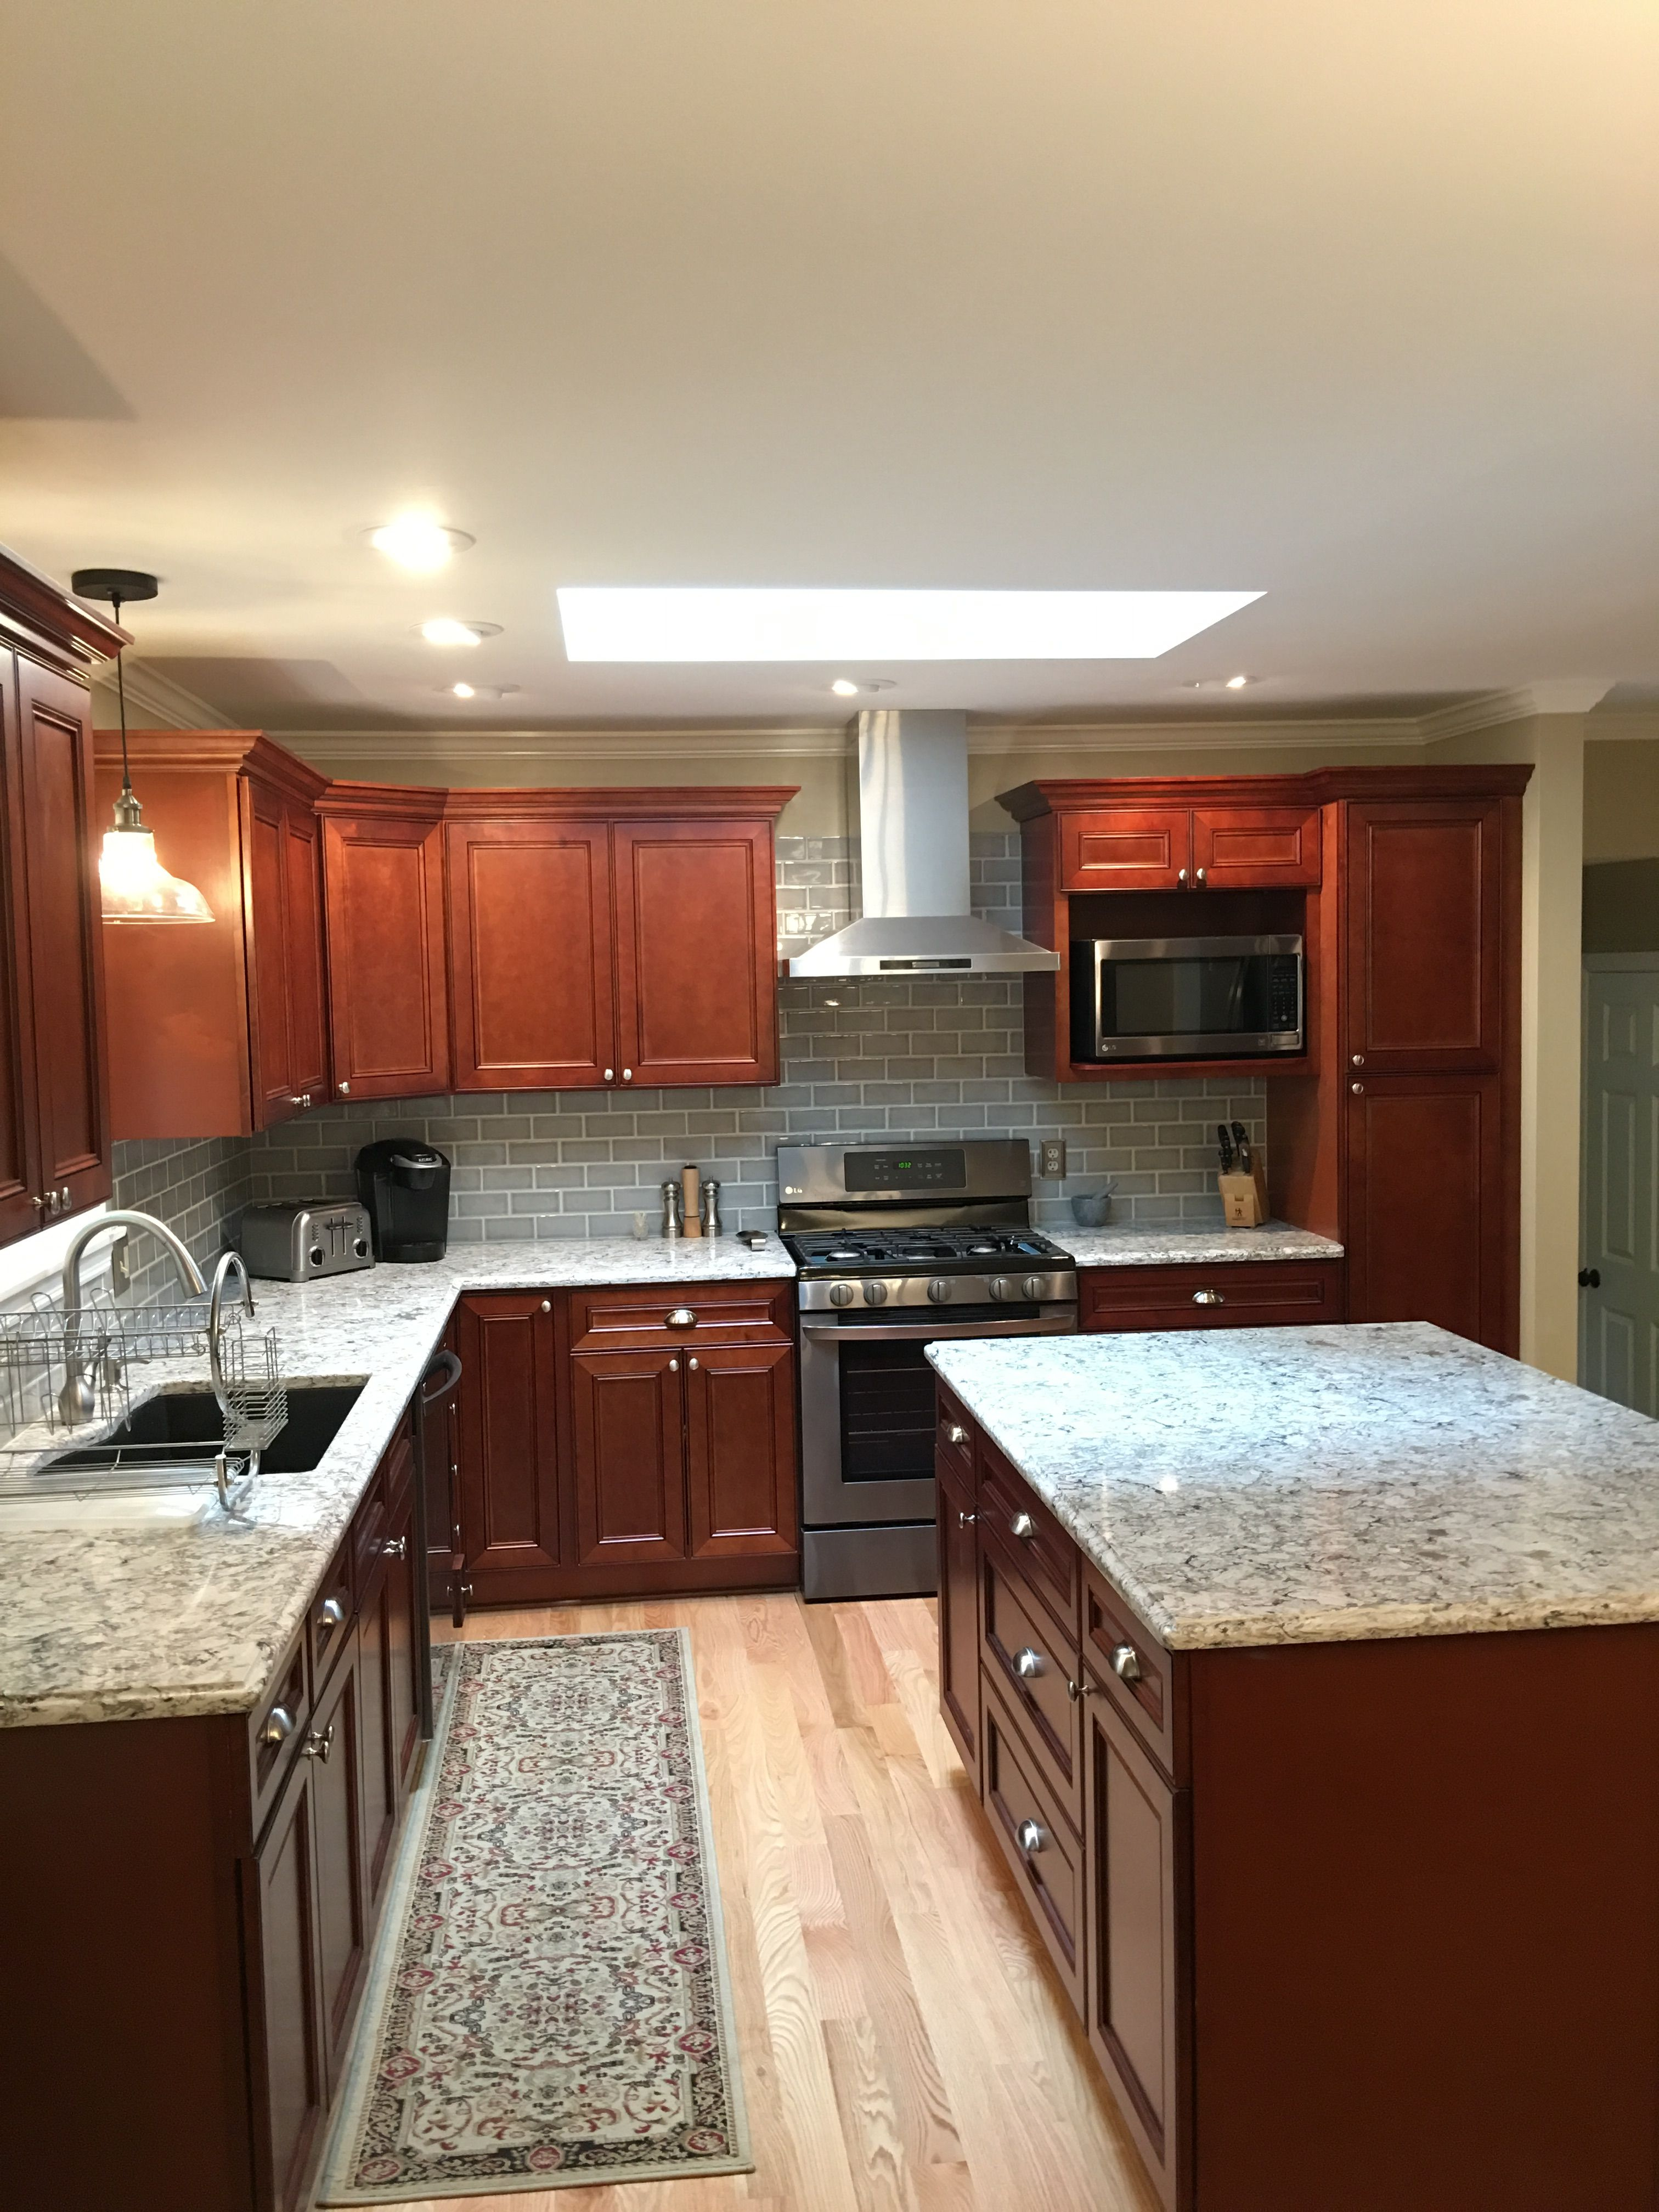 Kitchen Remodel In 2020 Cherry Cabinets Kitchen Cherry Wood Kitchen Cabinets Cherry Wood Kitchens